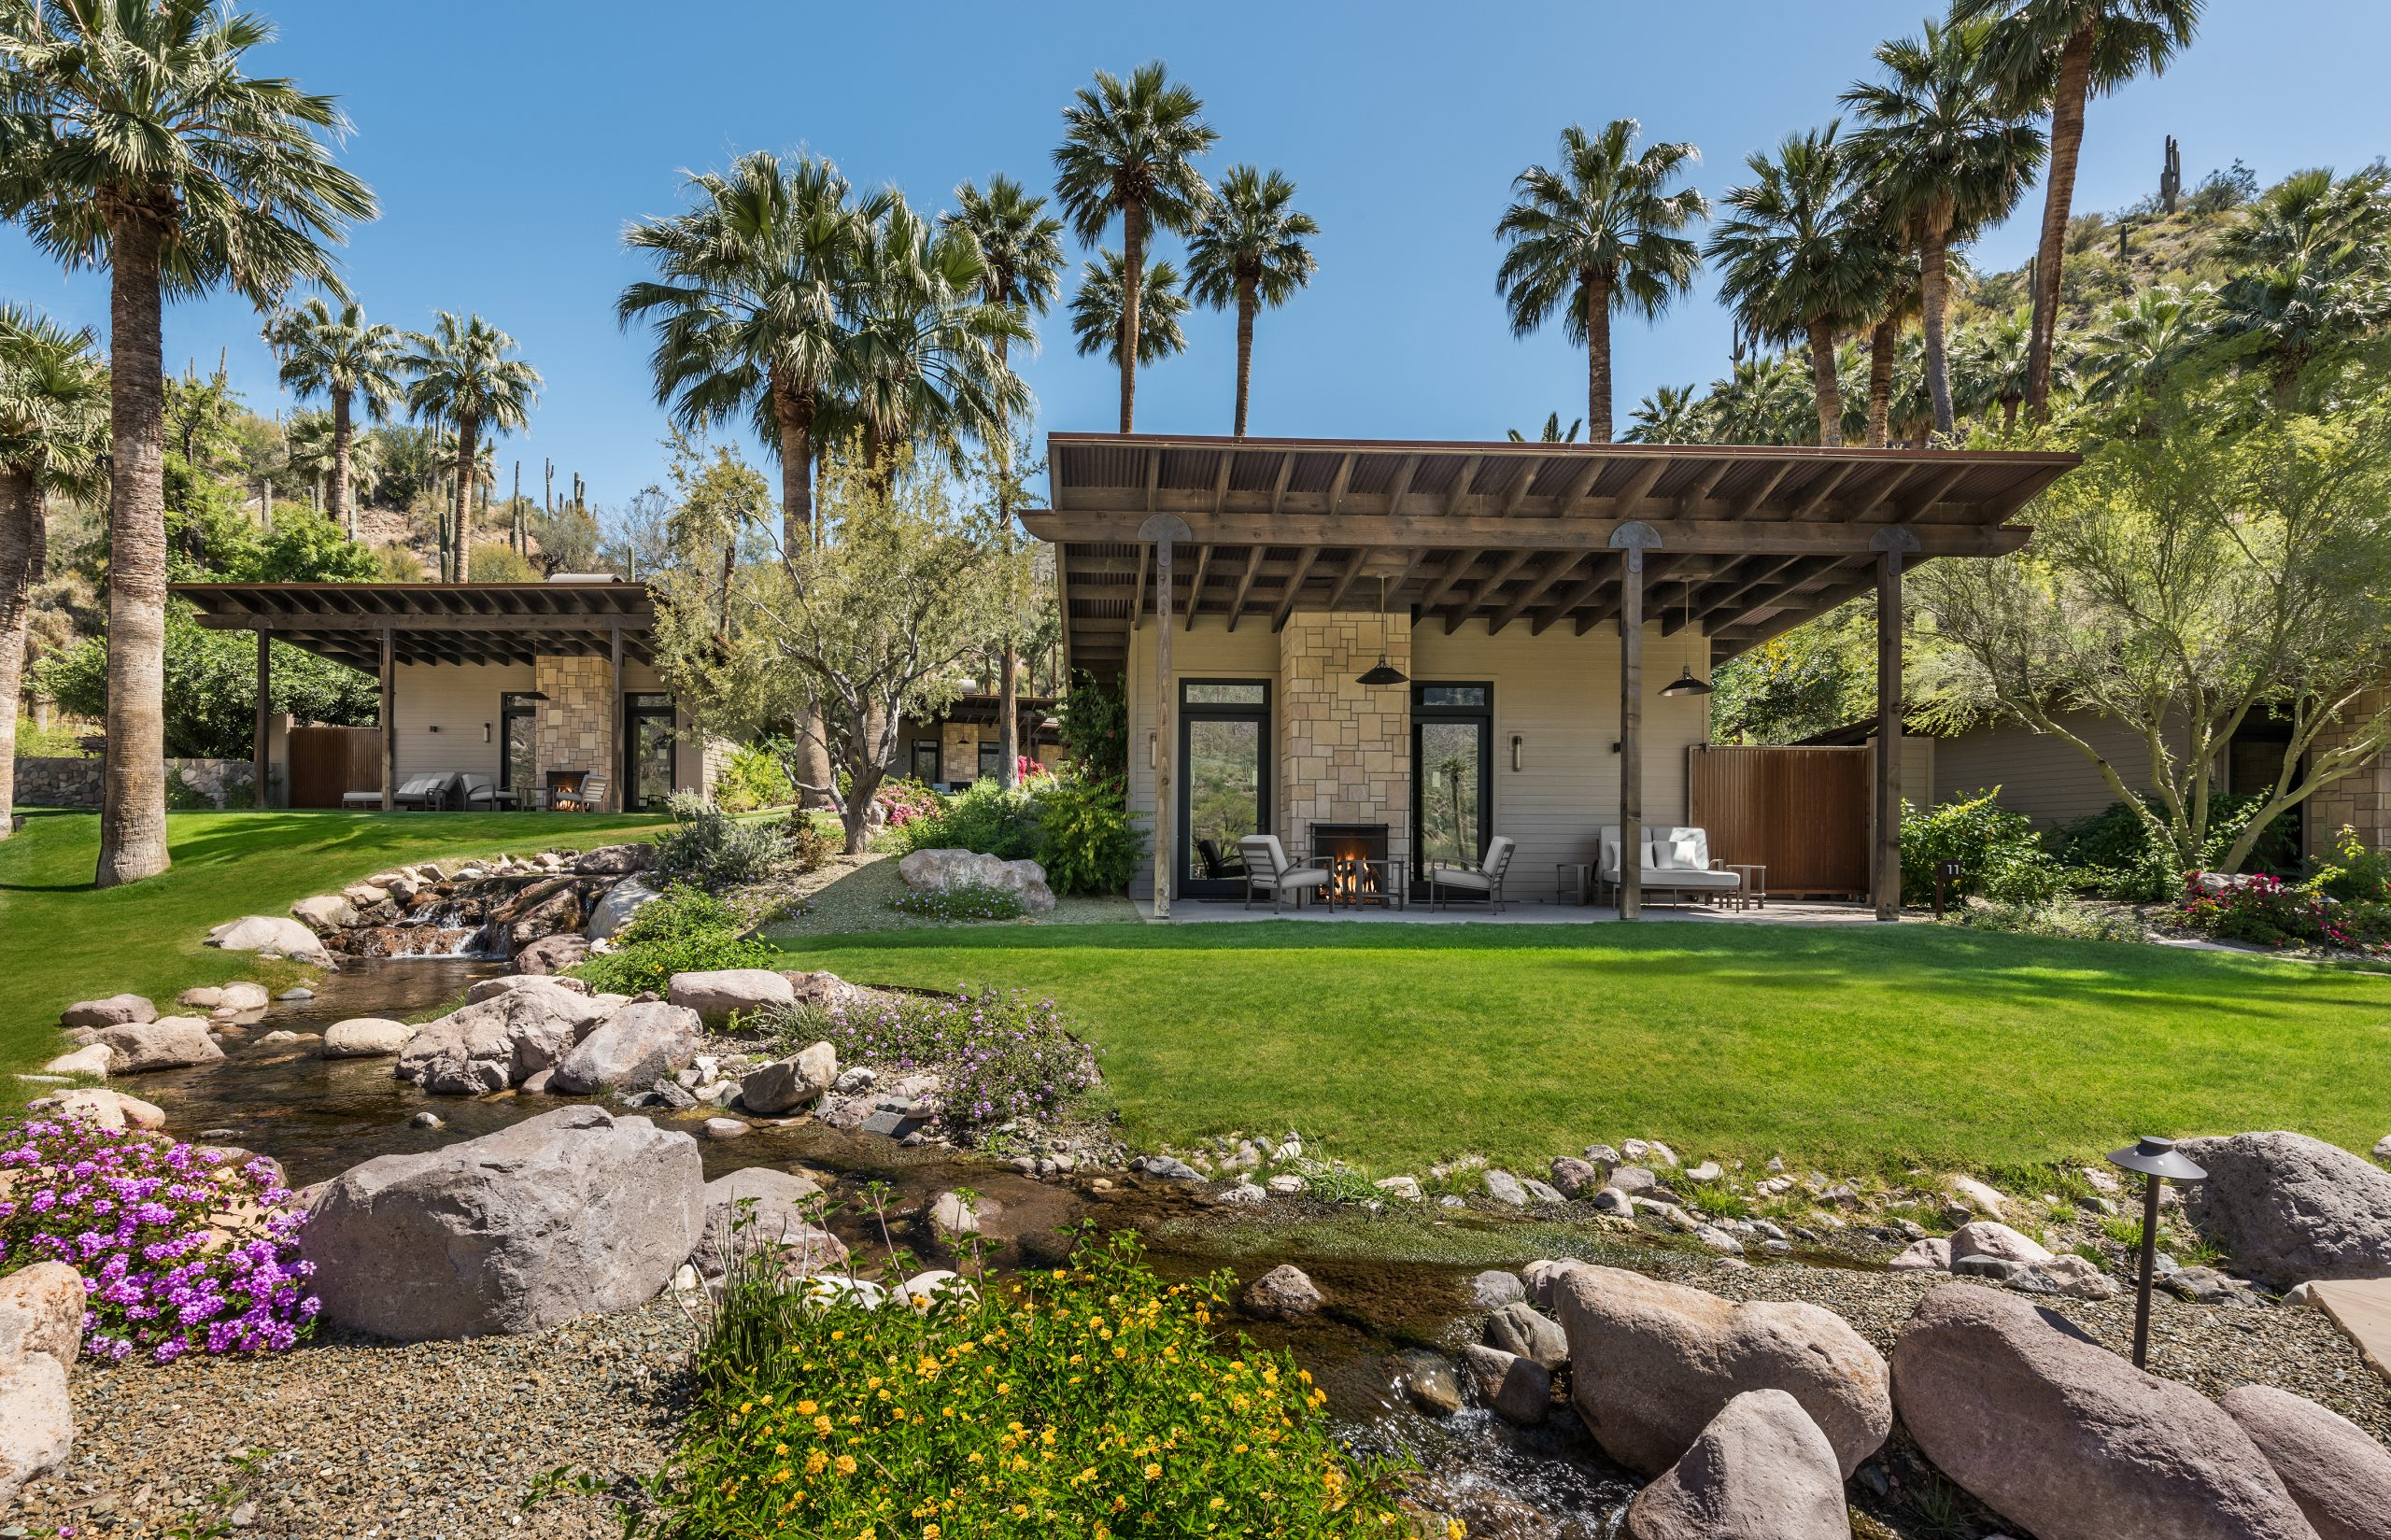 The Spring Bungalows at Castle Hot Springs for extended stay and relaxing vacations in Arizona